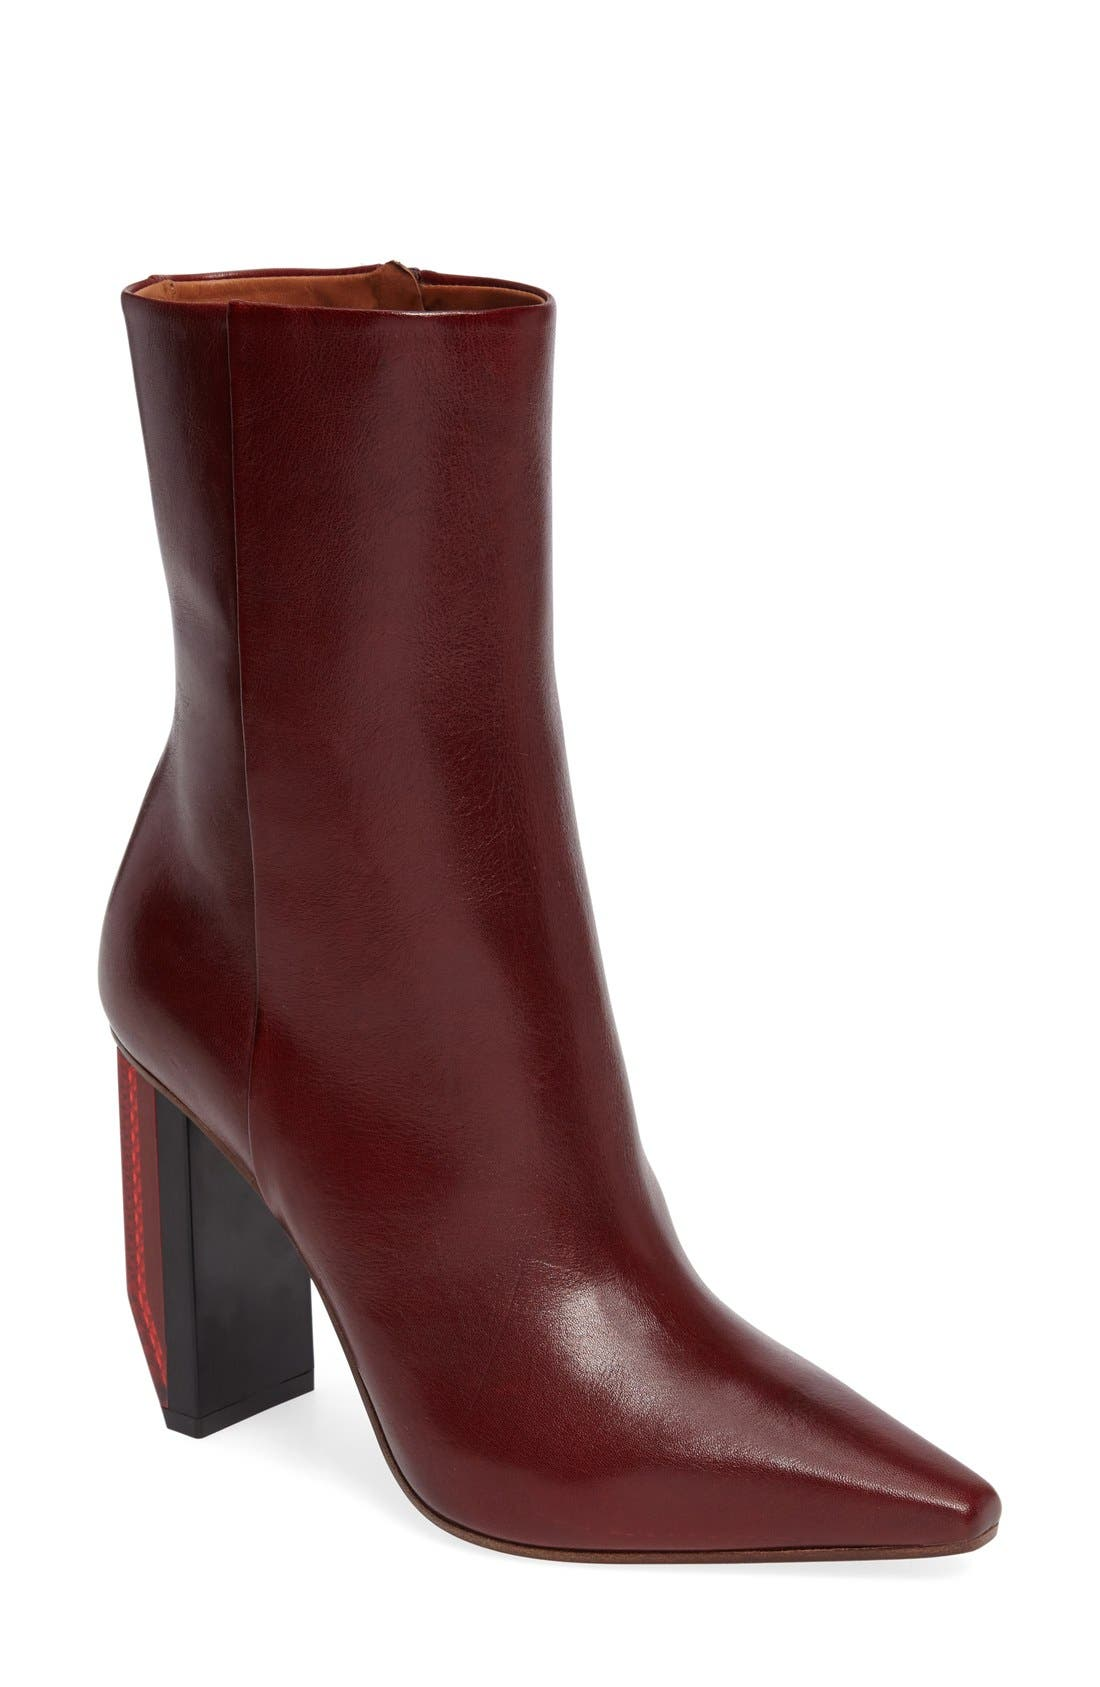 Reflector Heel Ankle Boot,                             Main thumbnail 1, color,                             930